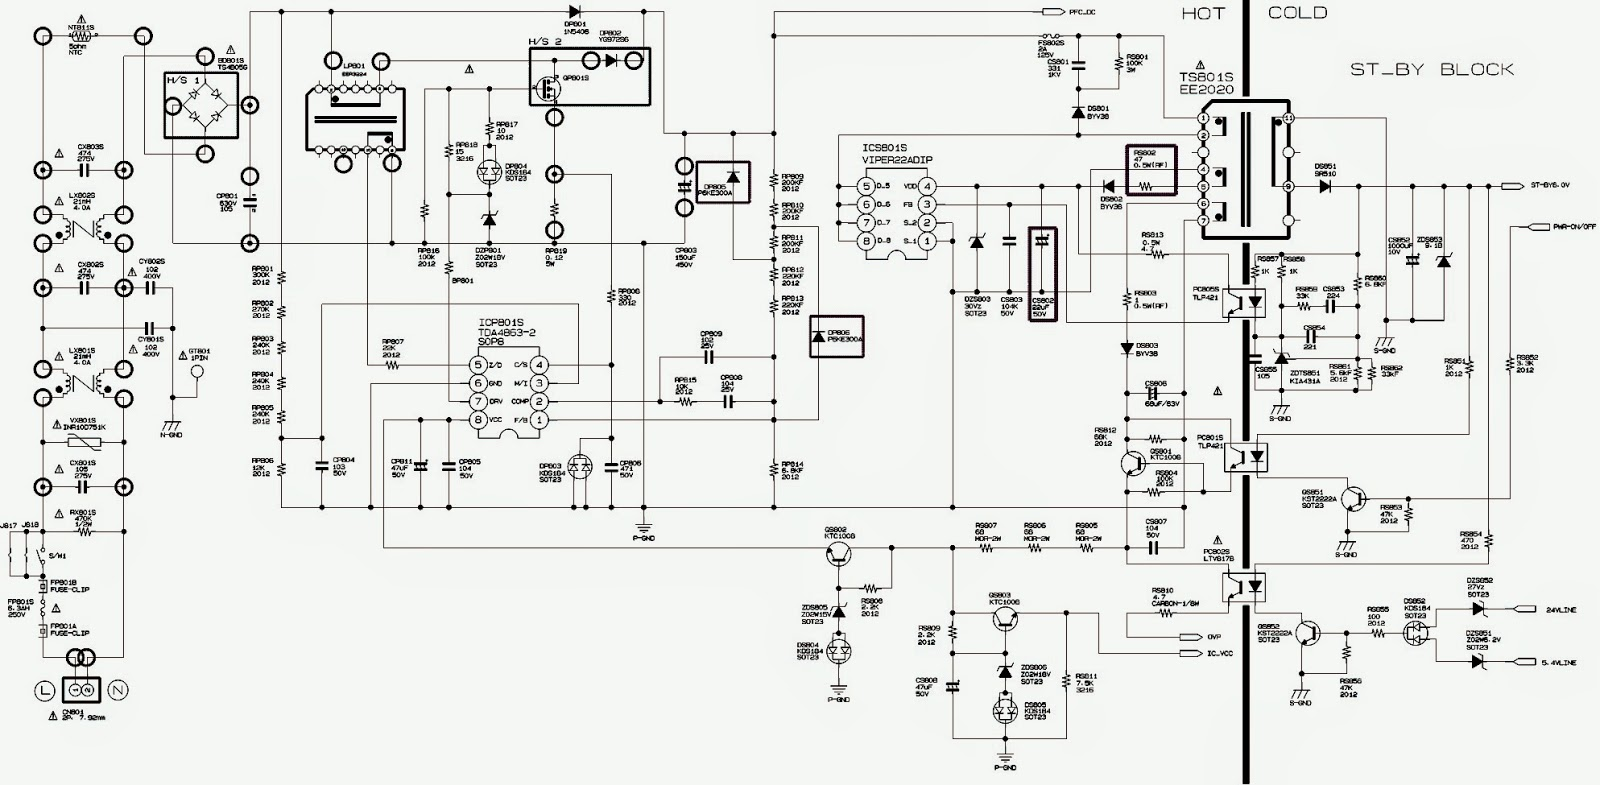 samsung bn-96 schematic - bordeaux - ver-1 and ver2